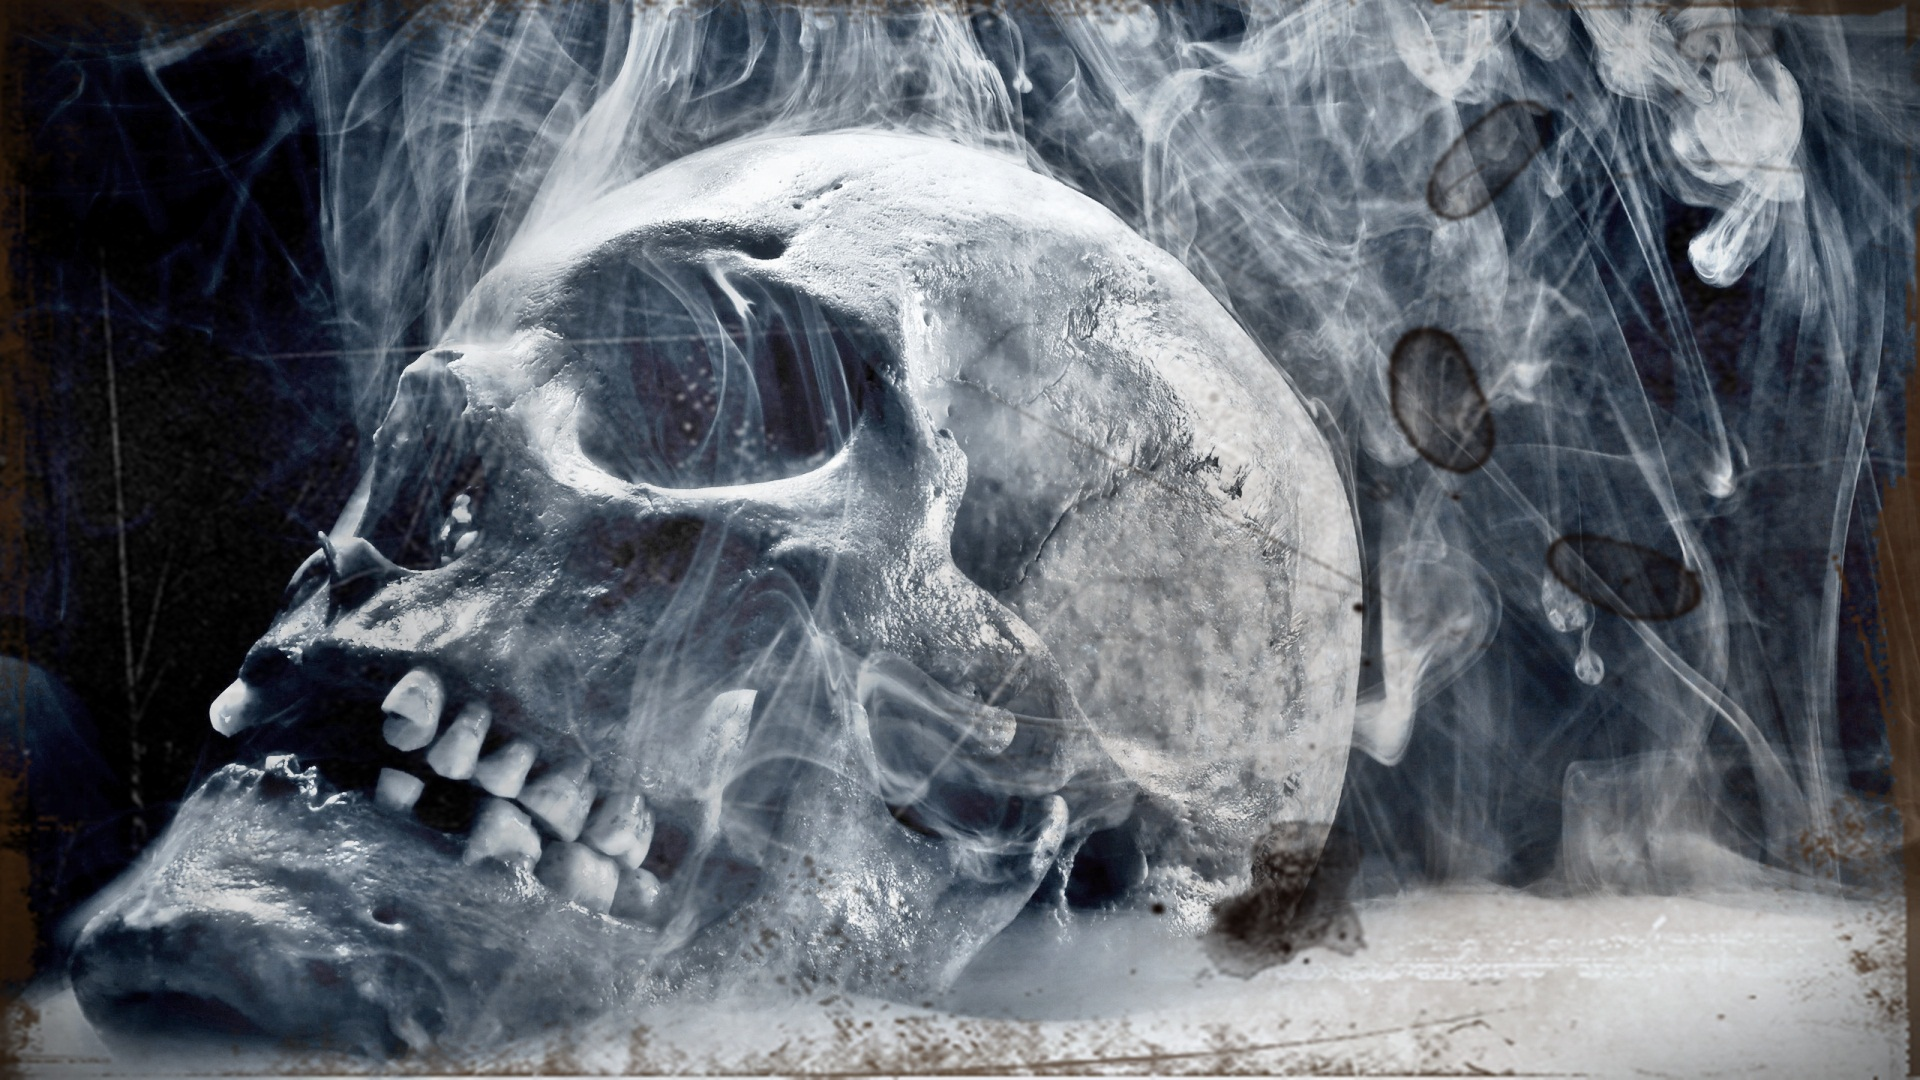 Skull Smoke 3d Hd Wallpaper 20411 Wallpaper High 1920x1080